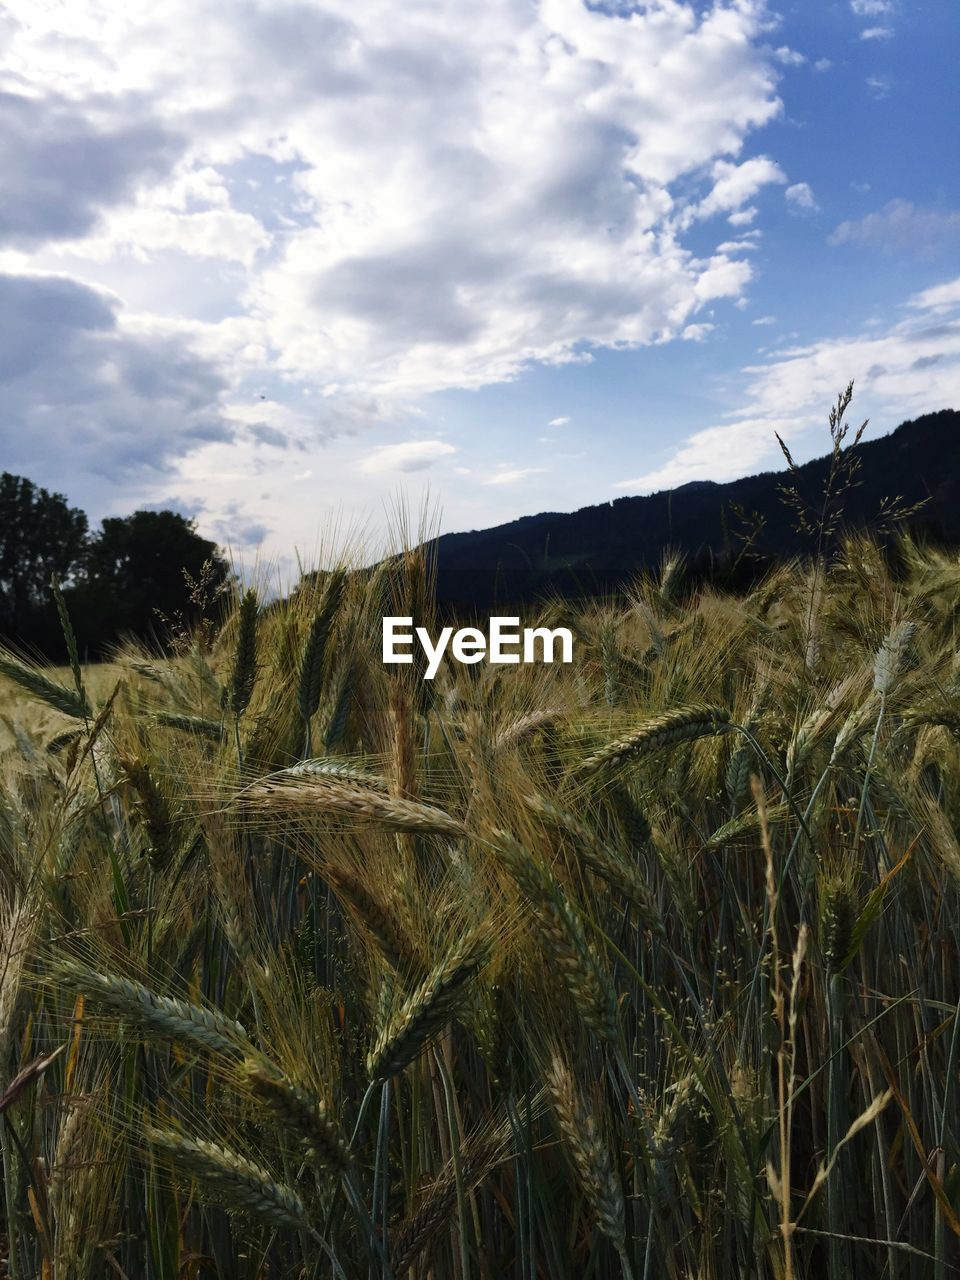 growth, sky, nature, field, landscape, crop, plant, tranquil scene, no people, tranquility, grass, agriculture, scenics, beauty in nature, cloud - sky, outdoors, day, rural scene, cereal plant, wheat, close-up